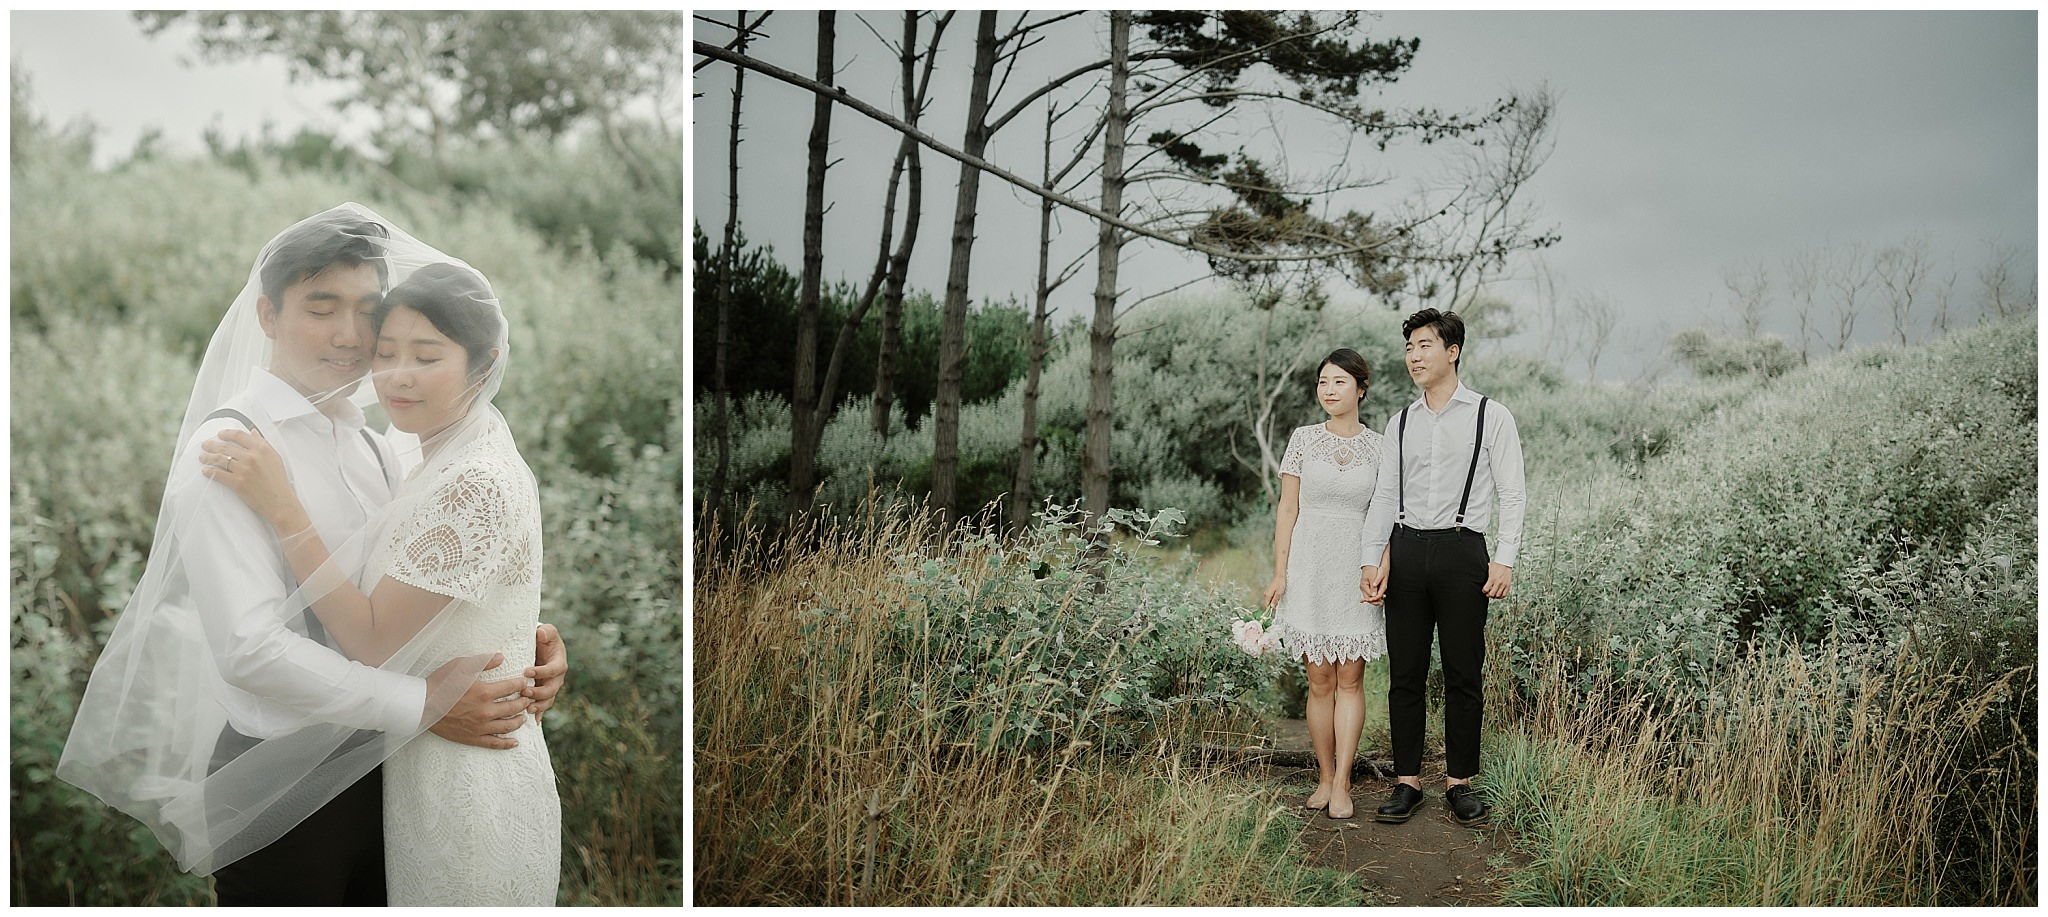 Auckland New Zealand Prewedding Photographer_0040.jpg